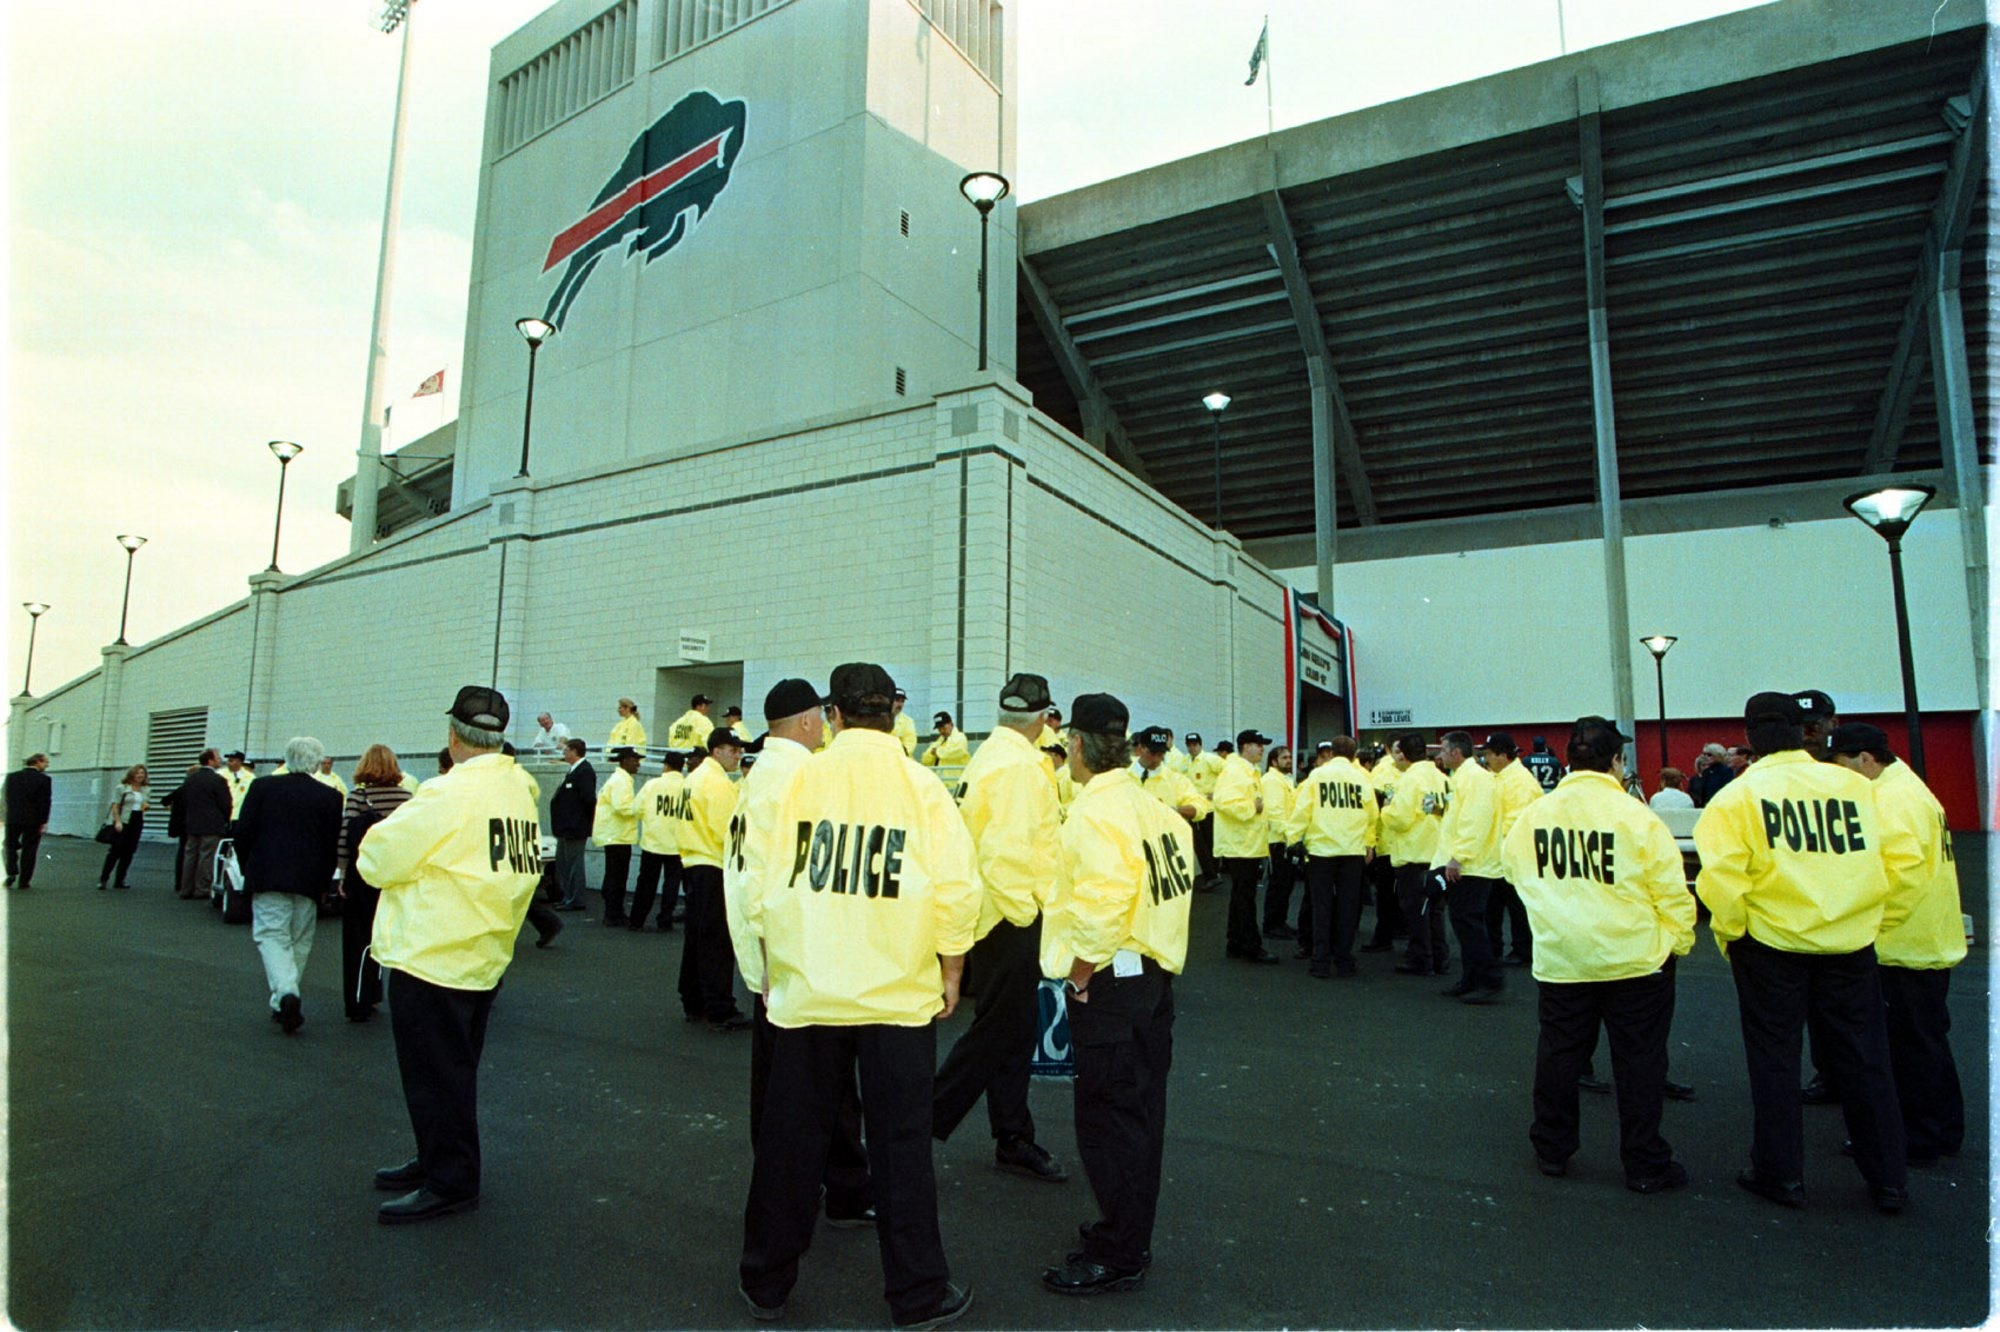 The Bills are expanding uniformed security inside and outside Ralph Wilson Stadium this year and plan to stop smoking and drinking in the immediate area around the entrance gates.